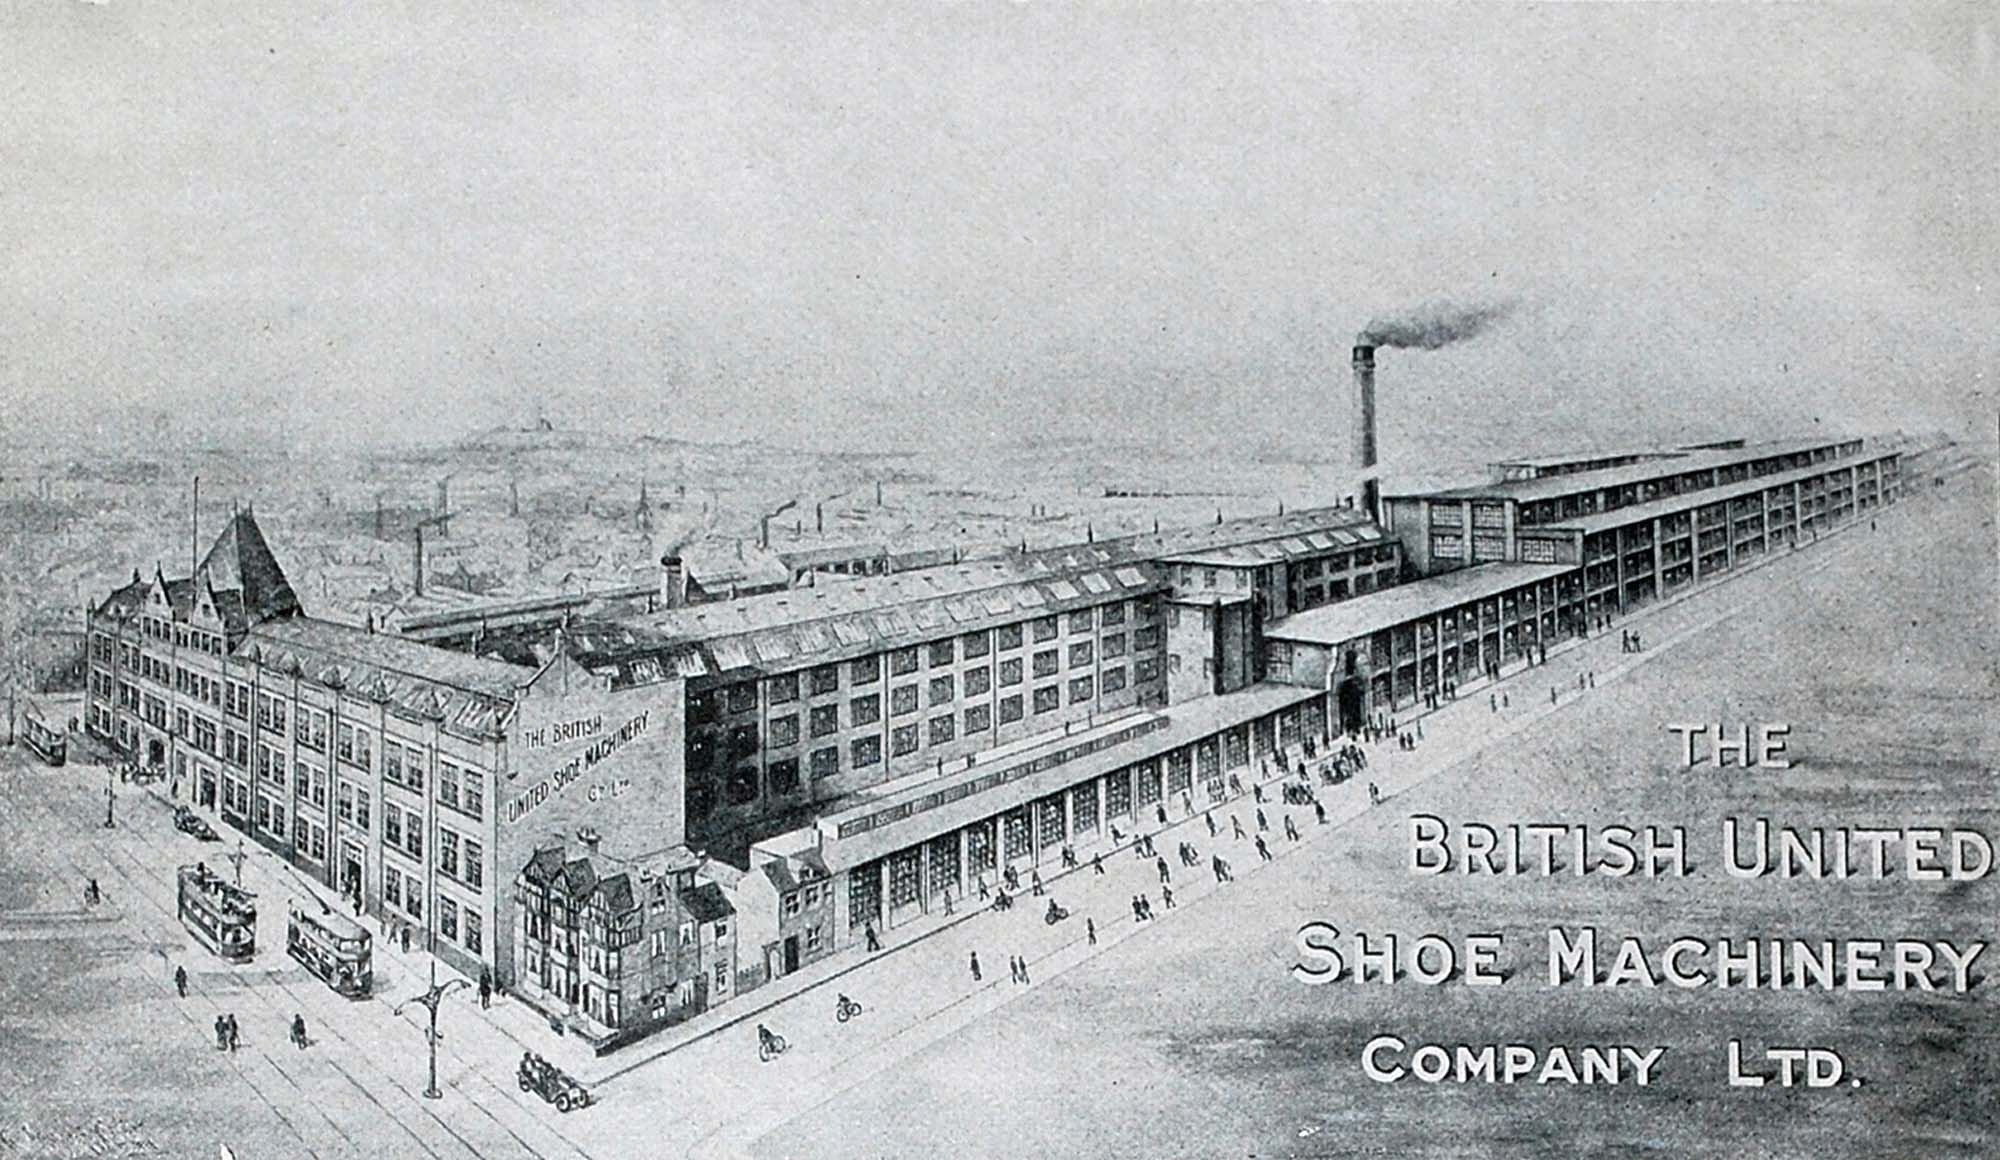 Detail of an advert for the The British United Shoe machinery Company Ltd. Showing their huge factory complex on Belgrave Road -